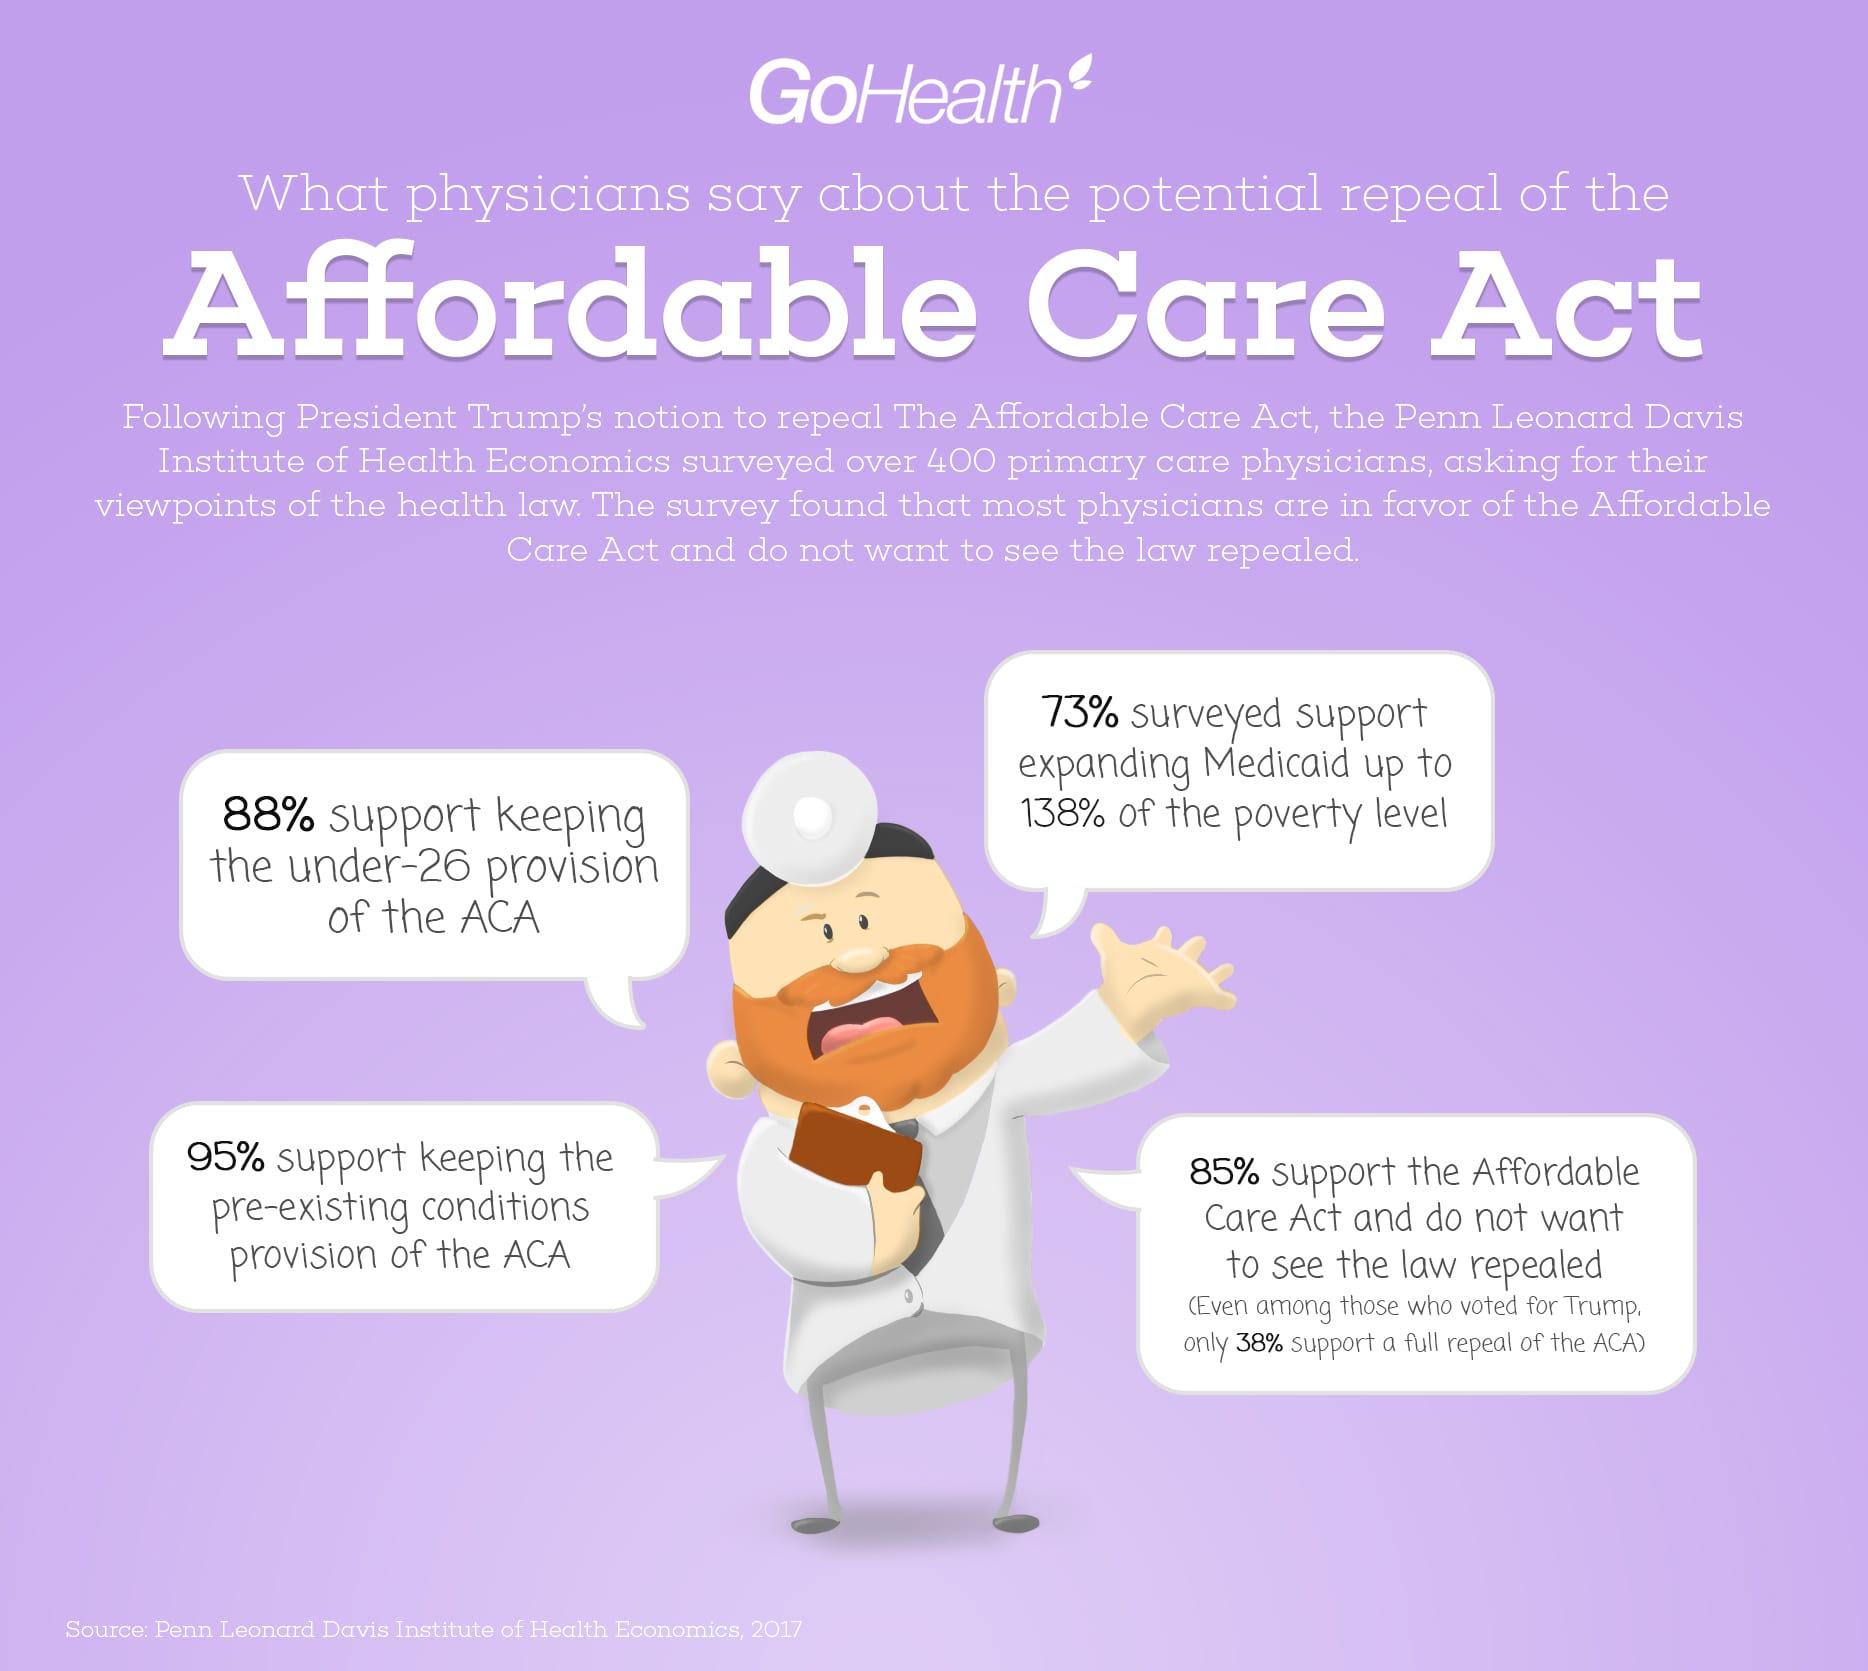 The majority of physicians support the Affordable Care Act ...